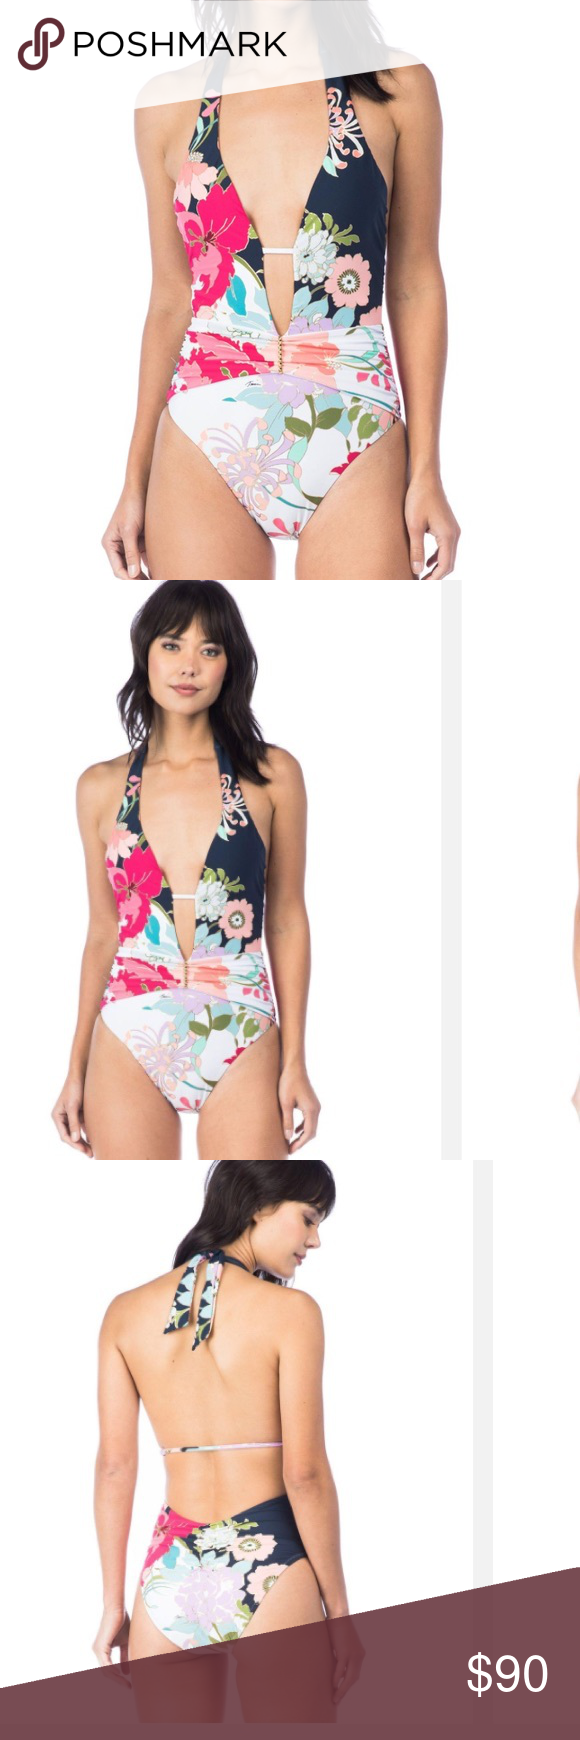 8eae309f142 Trina-Turk Royal Botanical V Plunge ONE PIECE US 6 Trina-Turk Royal  Botanical V Plunge ONE PIECE SWIMSUIT US 6 Trina Turk Swim One Pieces